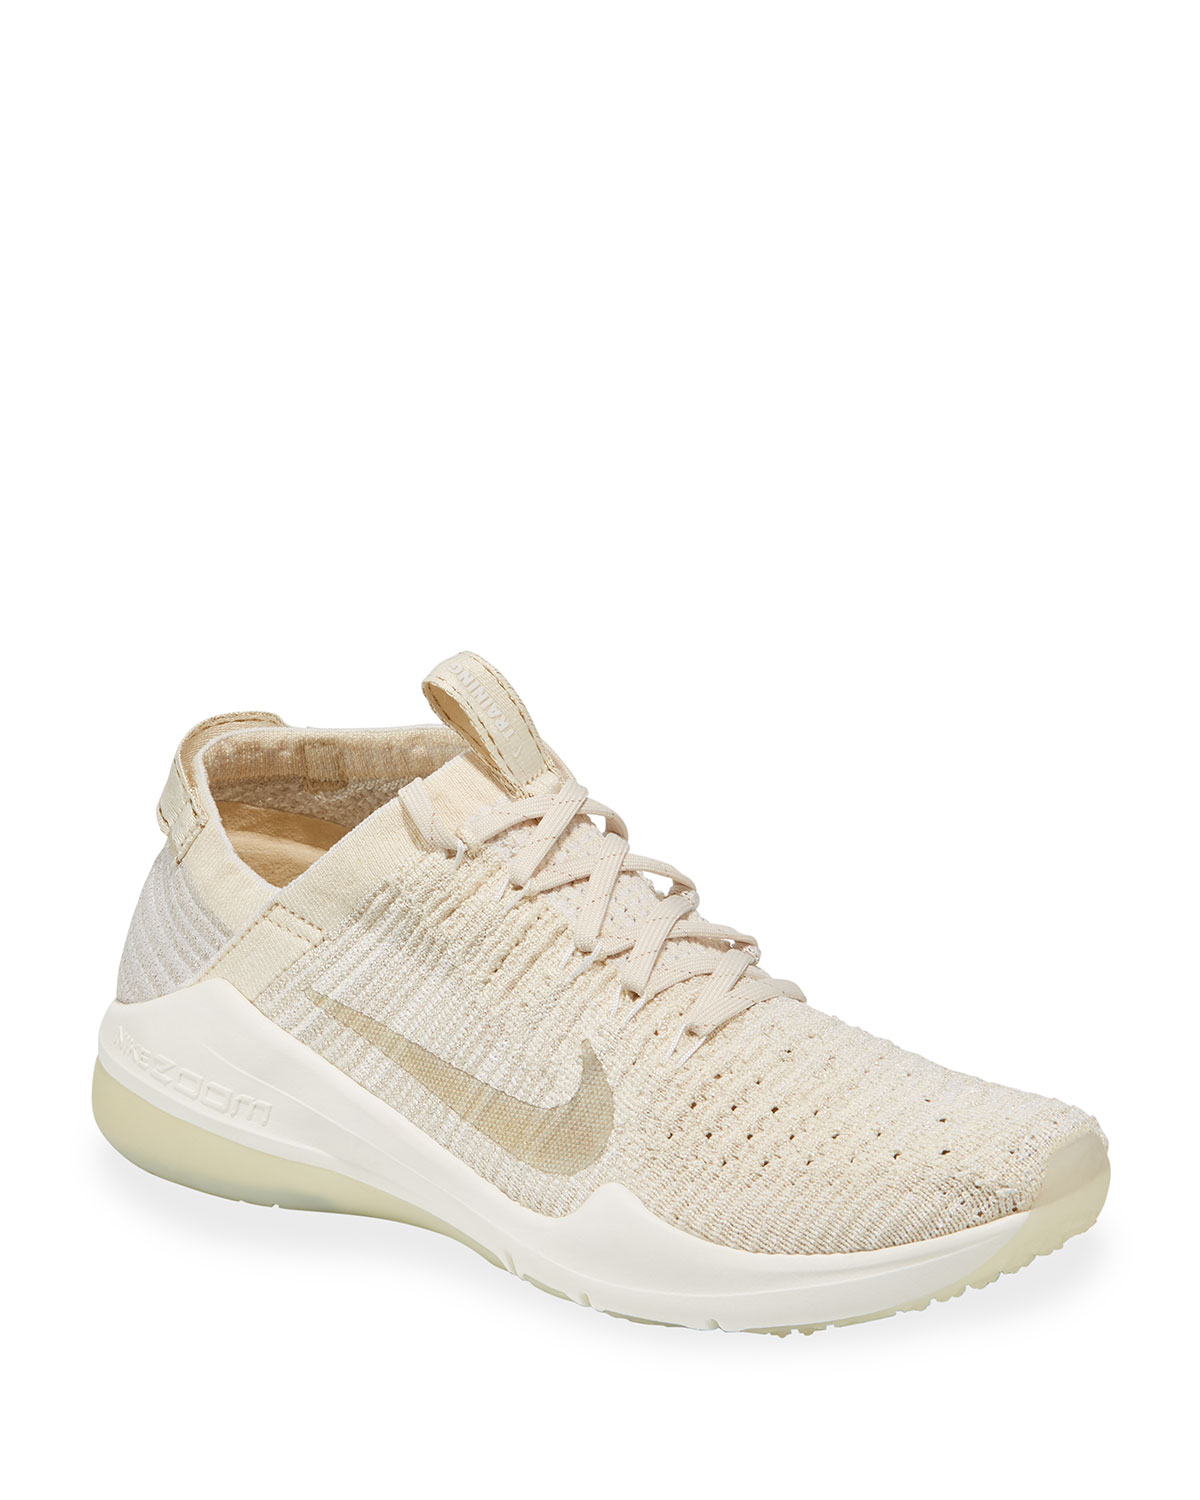 9460072bfe77 Nike Air Zoom Fearless FlyKnit 2 Metallic Sneakers